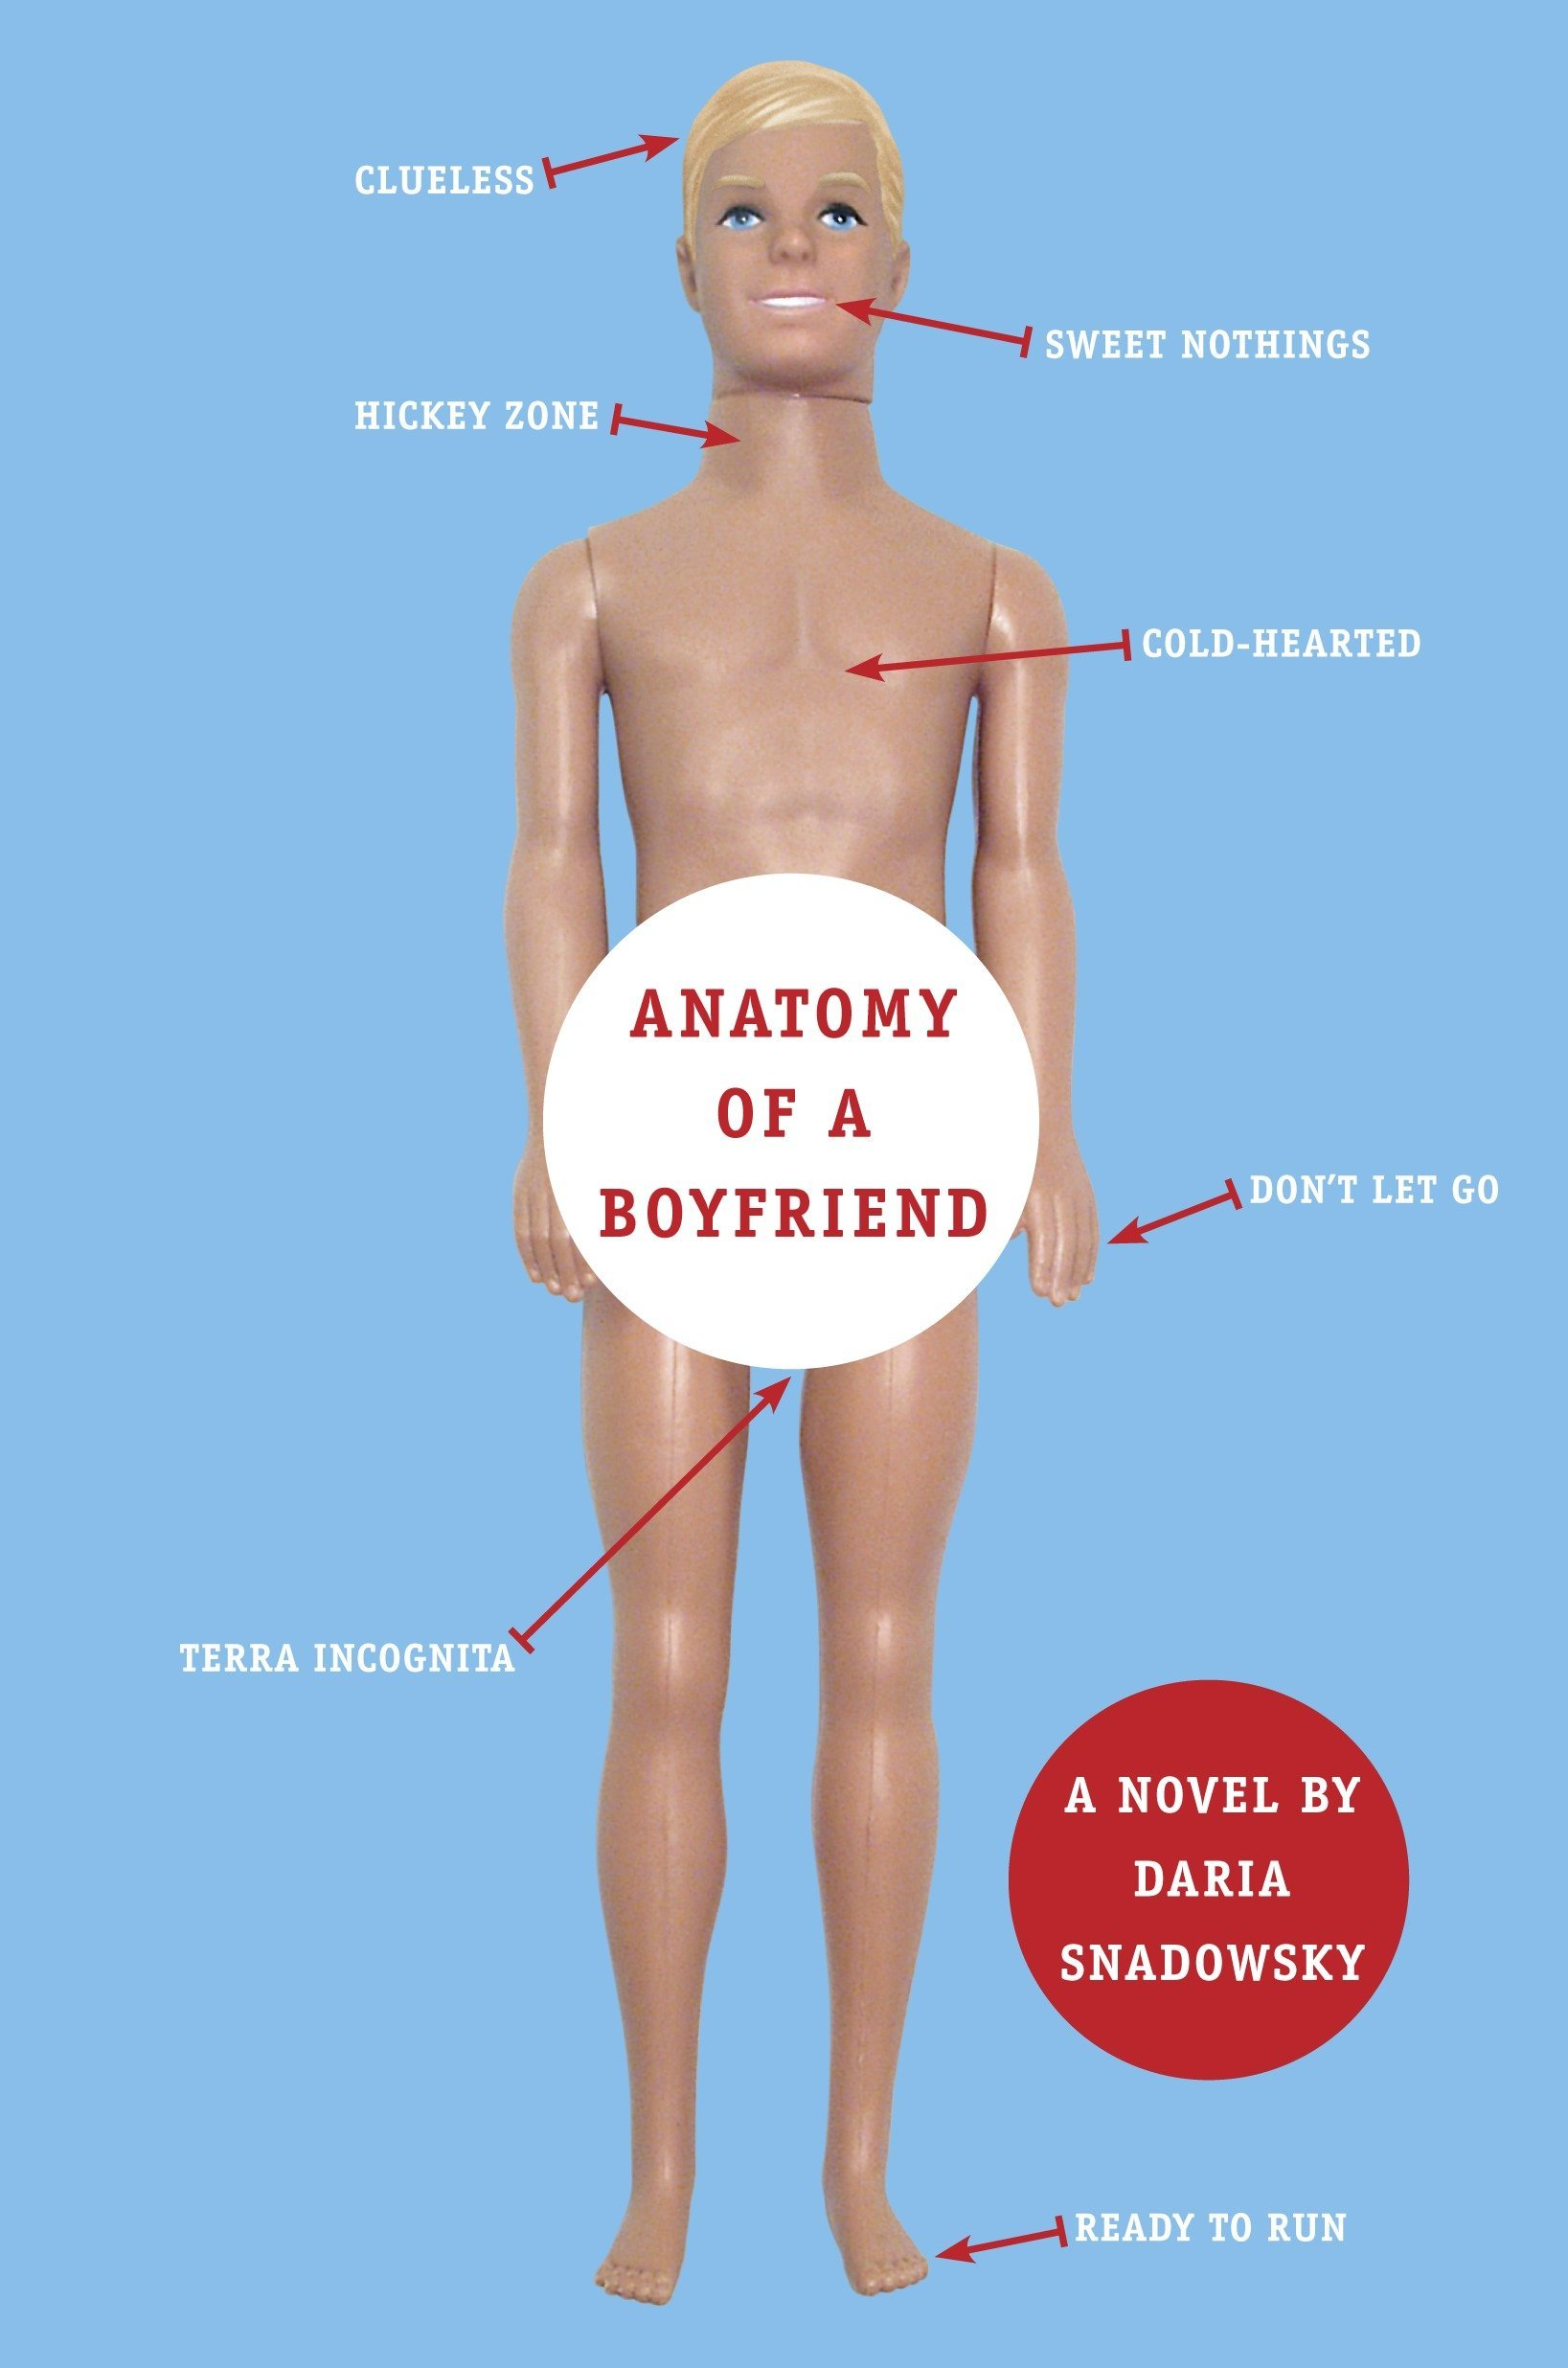 Anatomy Of A Boyfriend Daria Snadowsky 9780440239444 Books